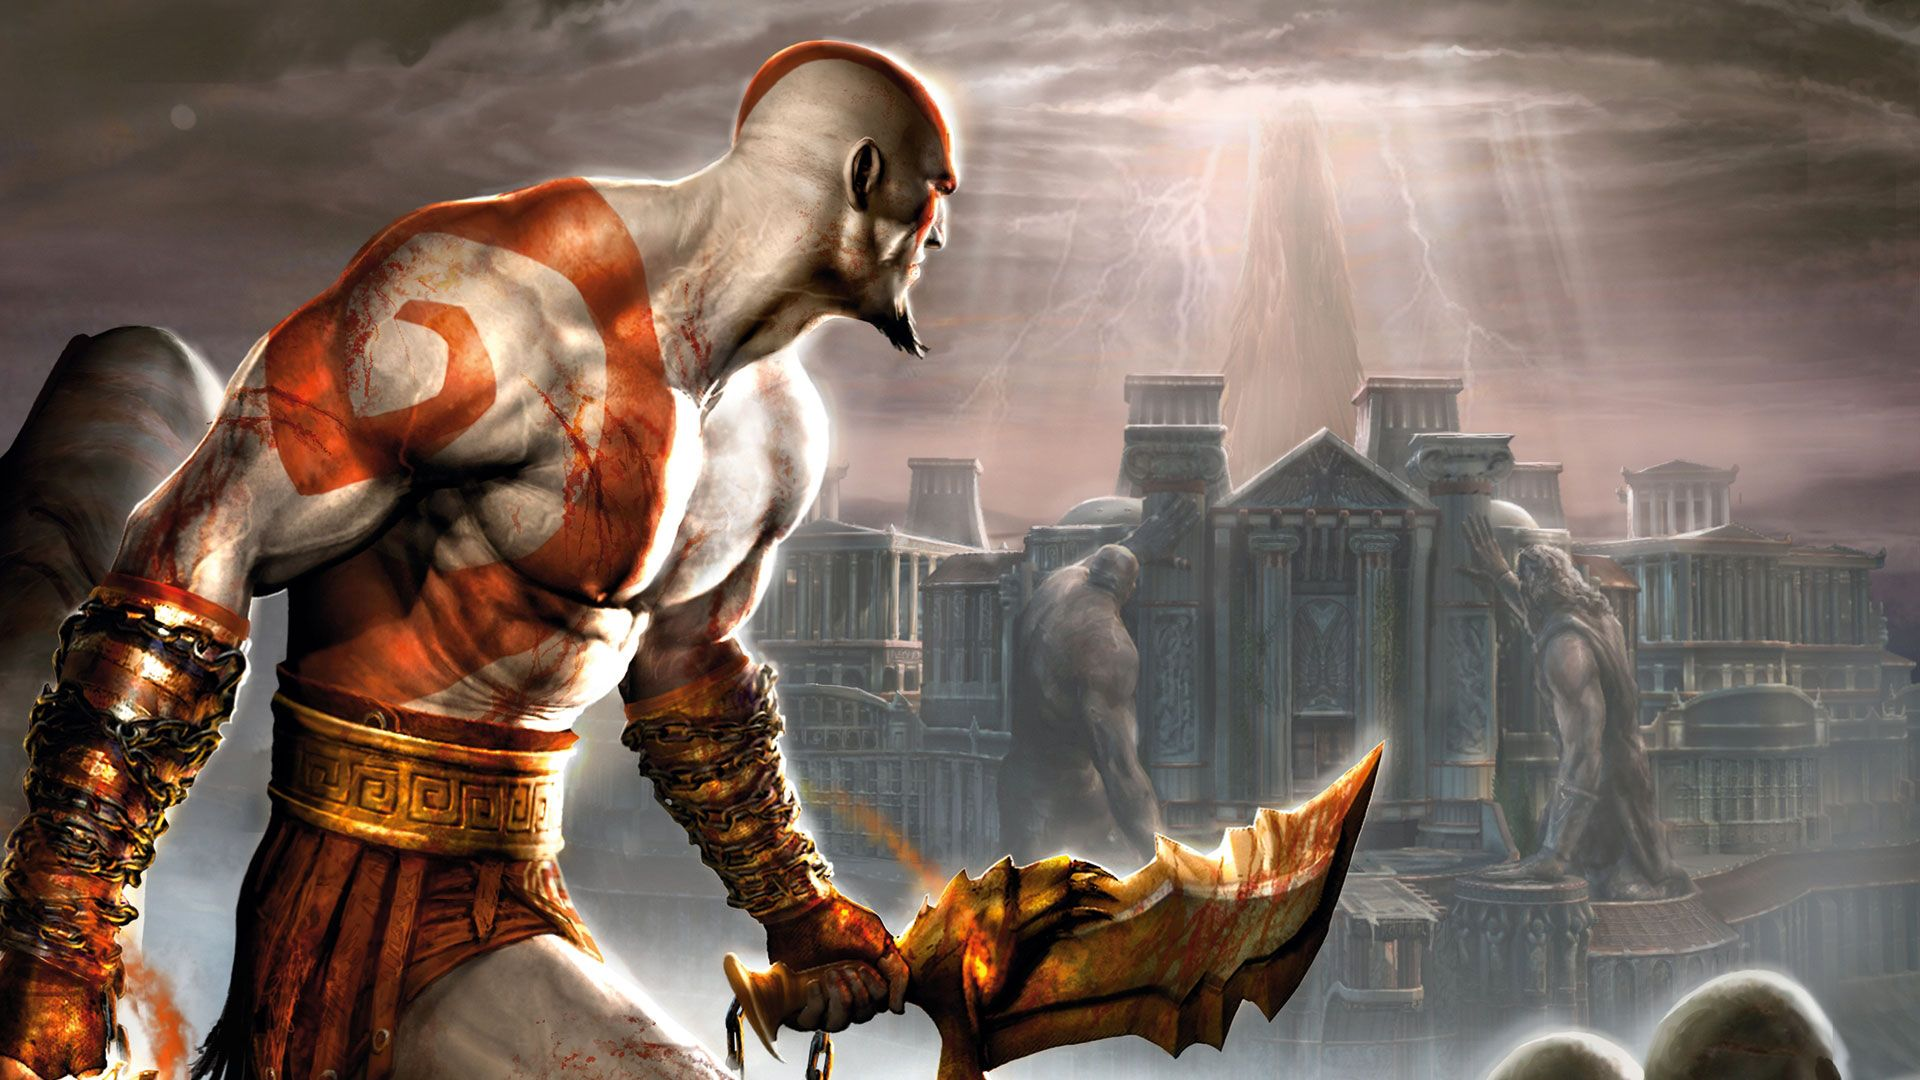 Video Games Kratos God Of War 1920x1080 Wallpaper Kratos God Of War God Of War Game God Of War